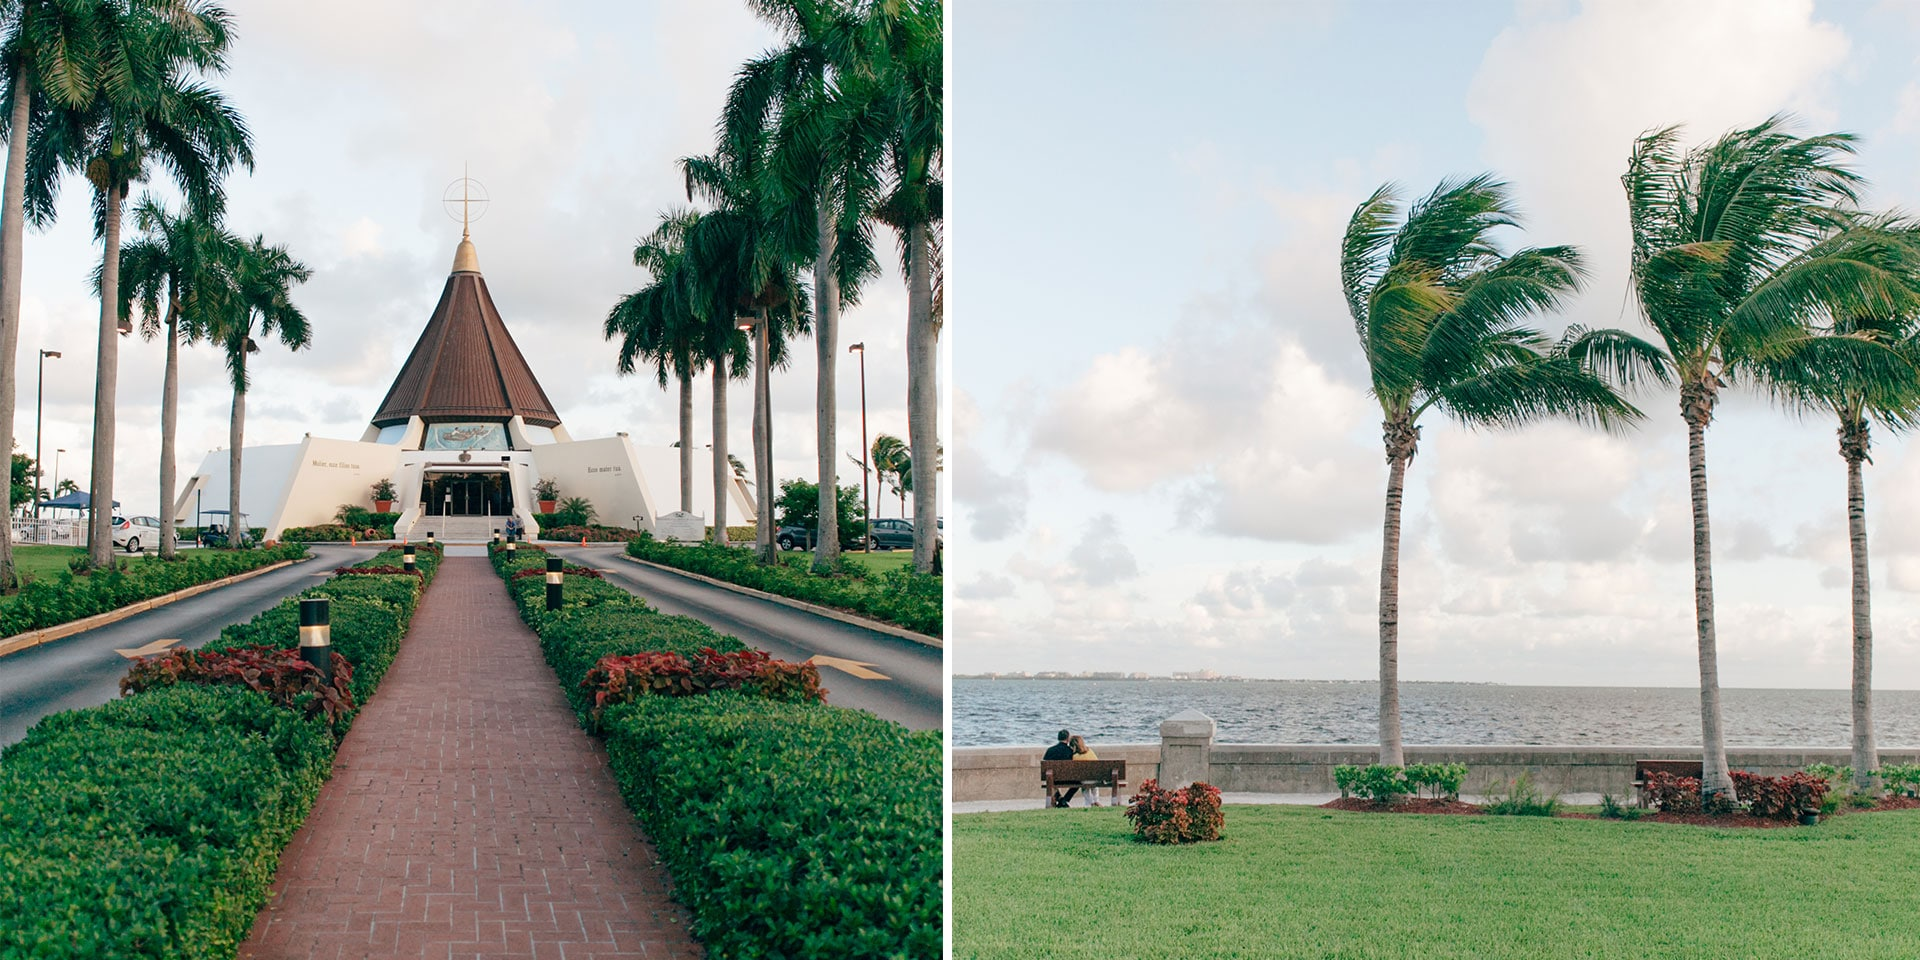 Peace out at Coconut Grove Church and its behind-the-scenes views. (Photo: Esteban Hernandez)